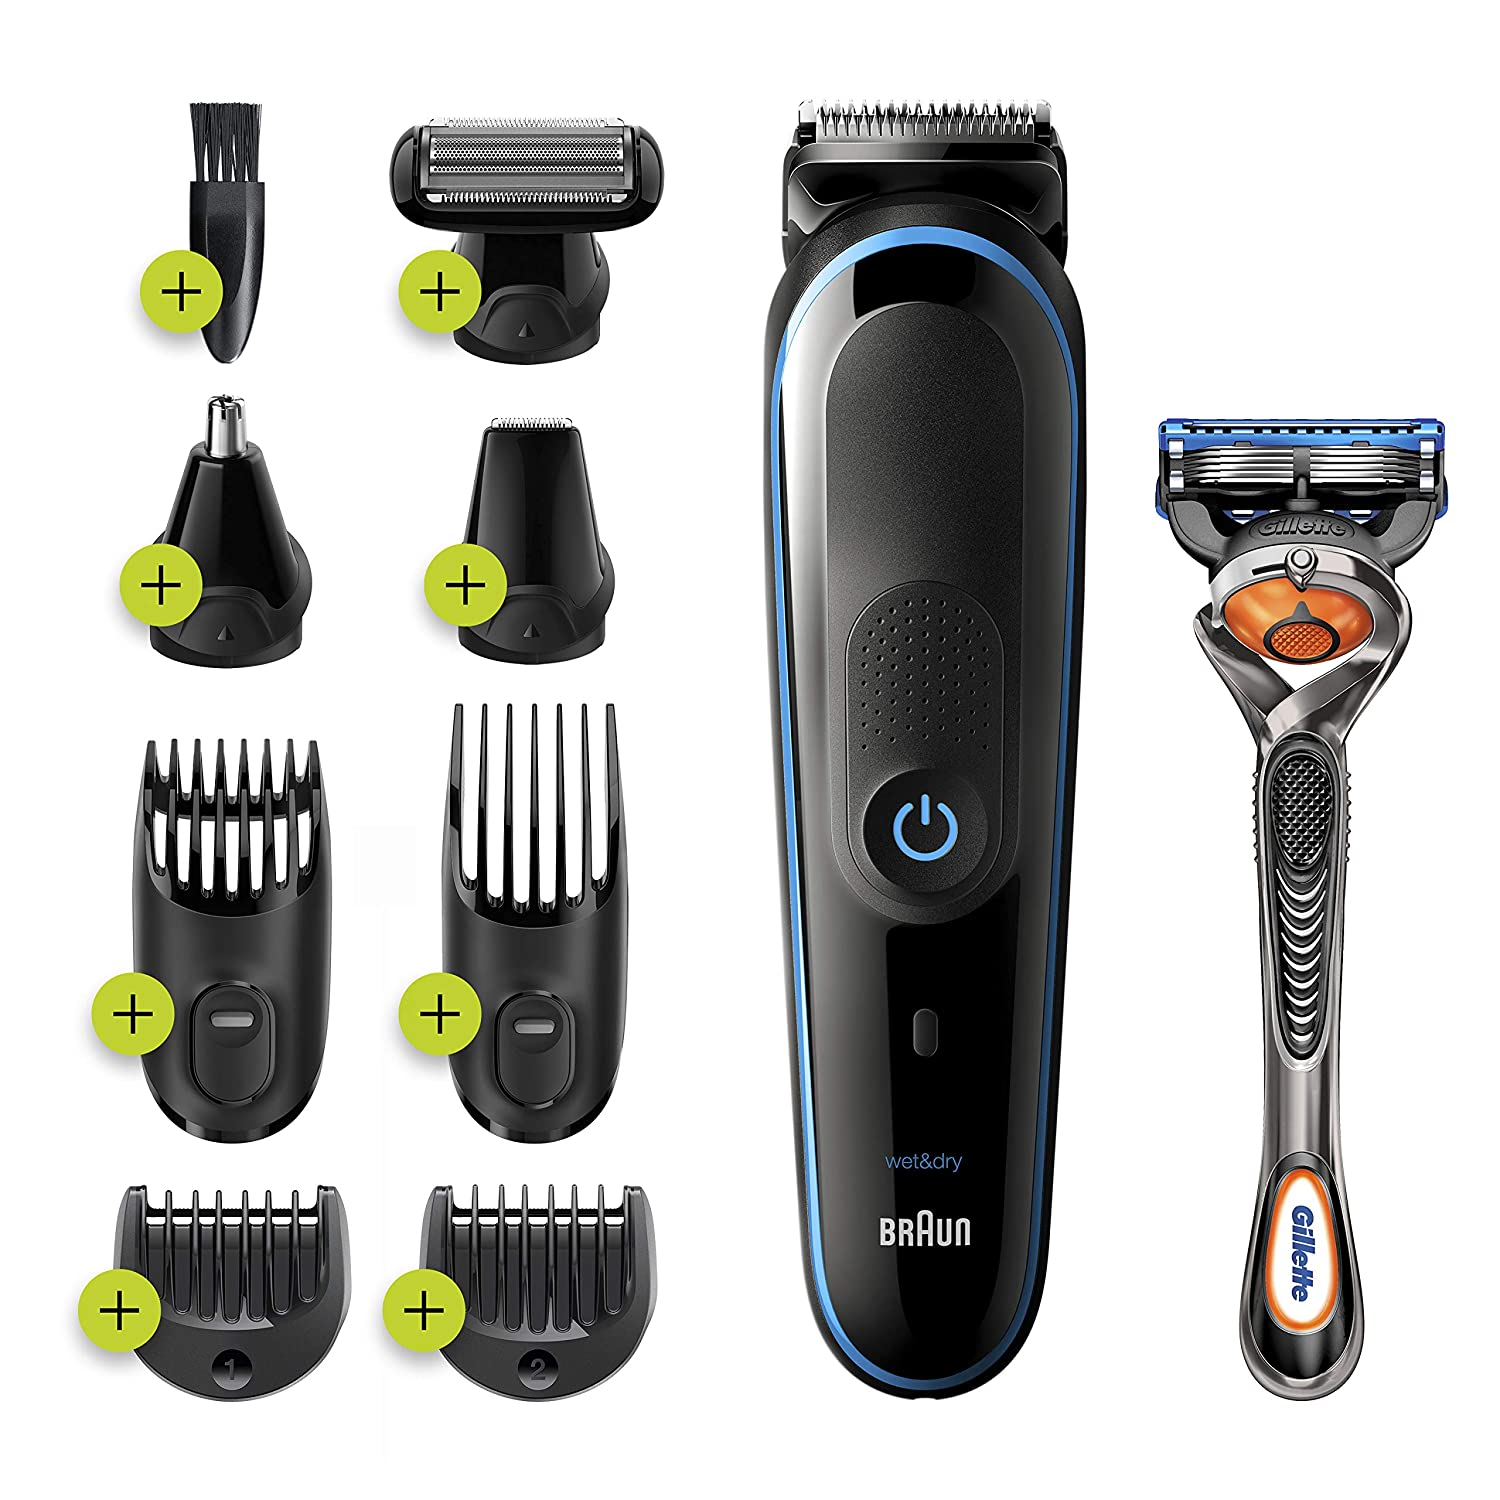 Braun 9-in-1 Trimmer MGK5280 Beard Trimmer for Men, Body Grooming Kit & Hair Clipper, Black/Blue